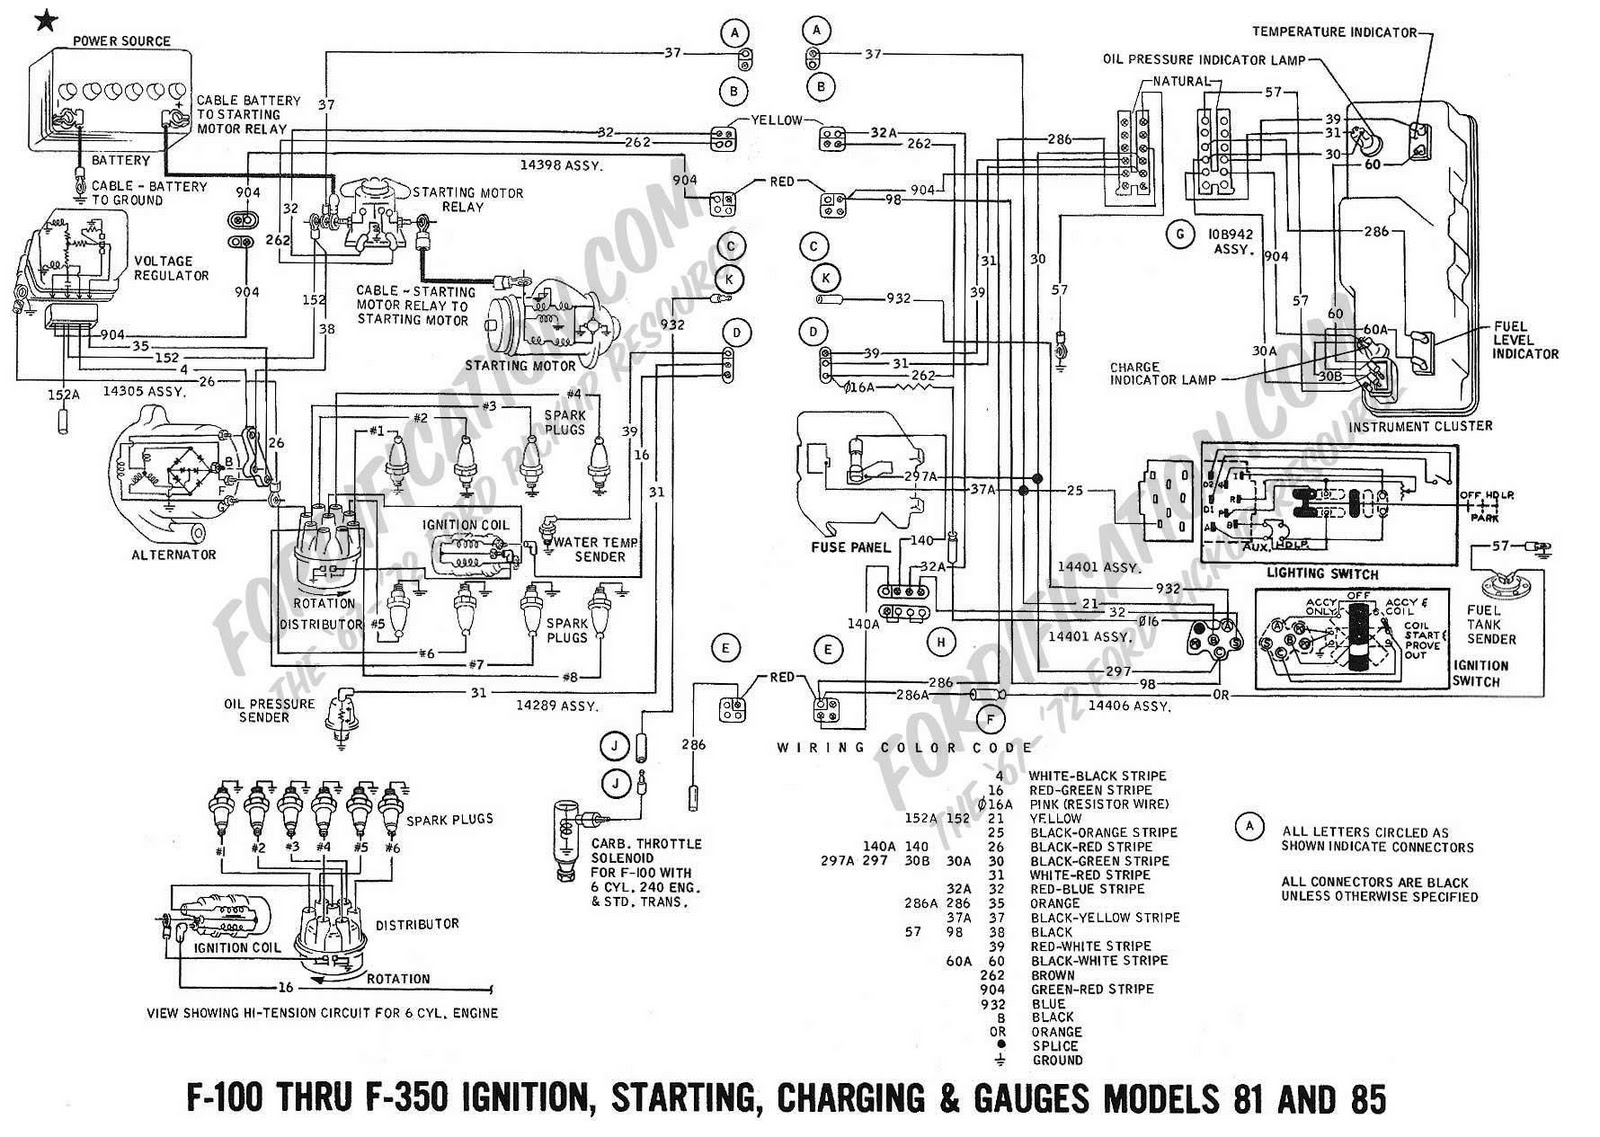 1972 ford truck alternator wiring diagram 302 engine